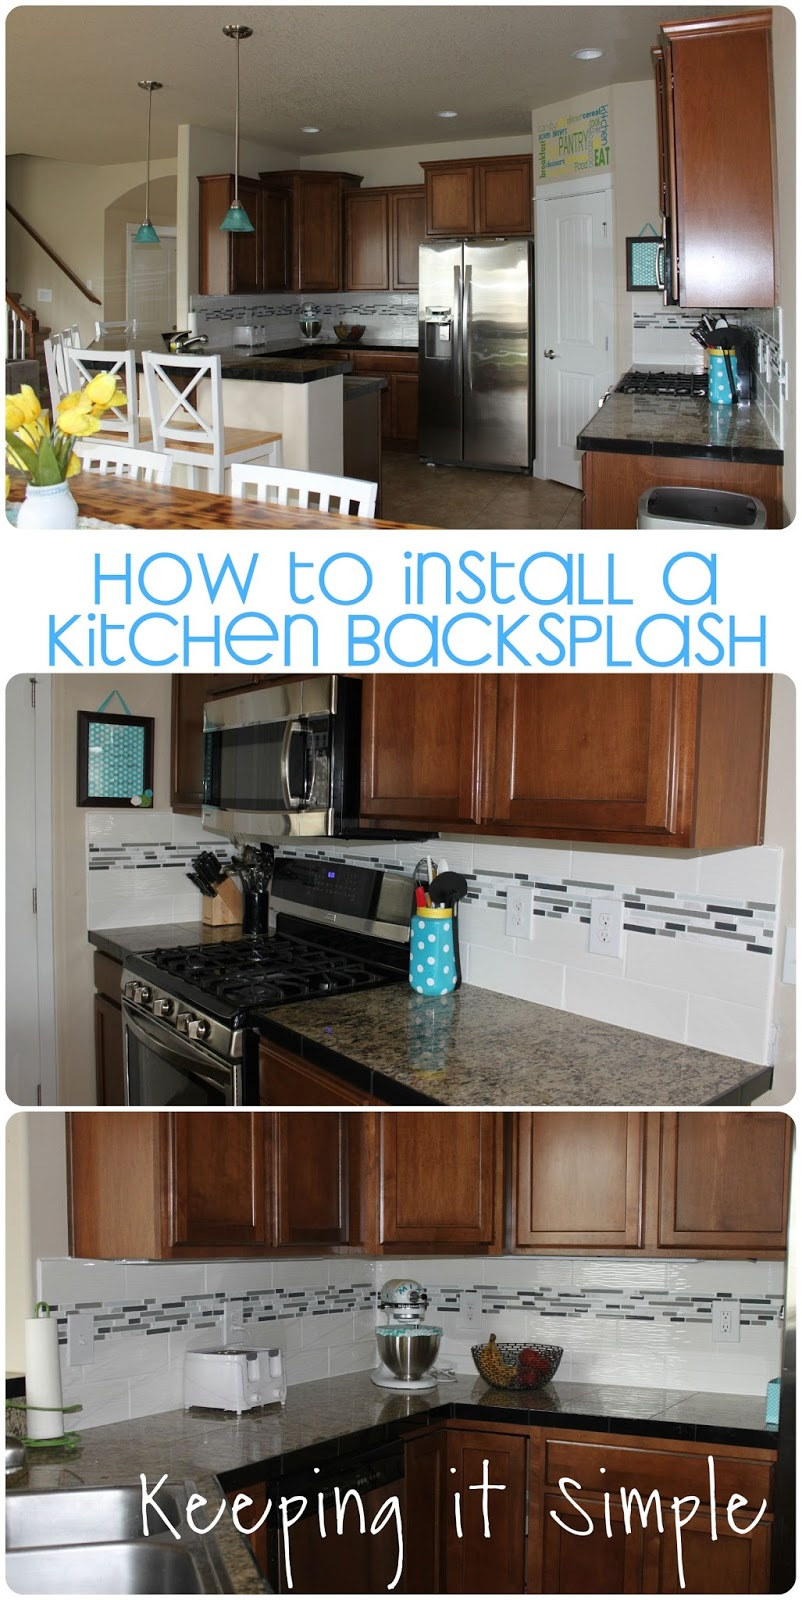 How Much To Install Backsplash how do you choose the perfect kitchen tile backsplash there are so many decisions How To Install A Kitchen Back Splash With Wavecrest And Mosaic Tile Using Sticky Mat